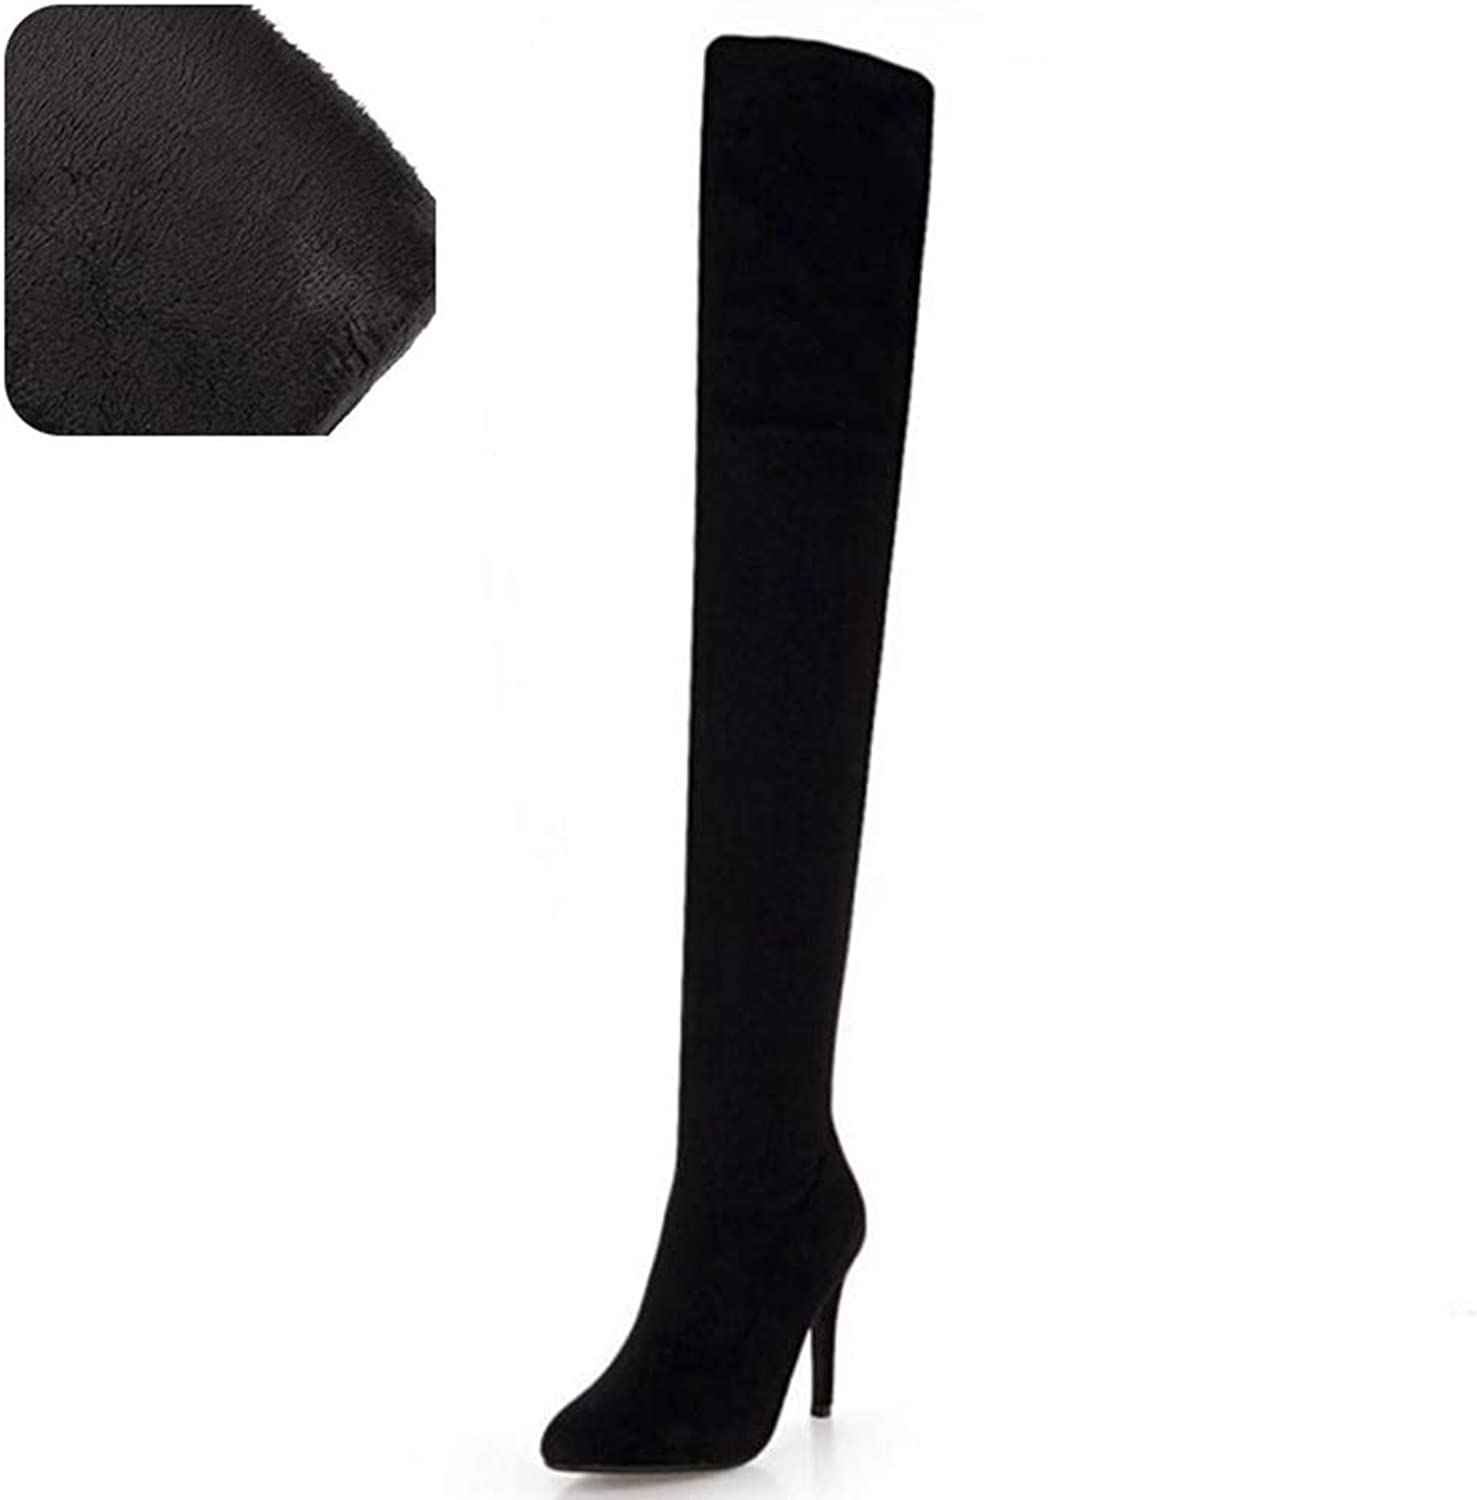 Webb Perkin Women High Heel Boots Winter shoes Zipper Pointed Toe Fur shoes Long Boots Lady Over Knee High Boots